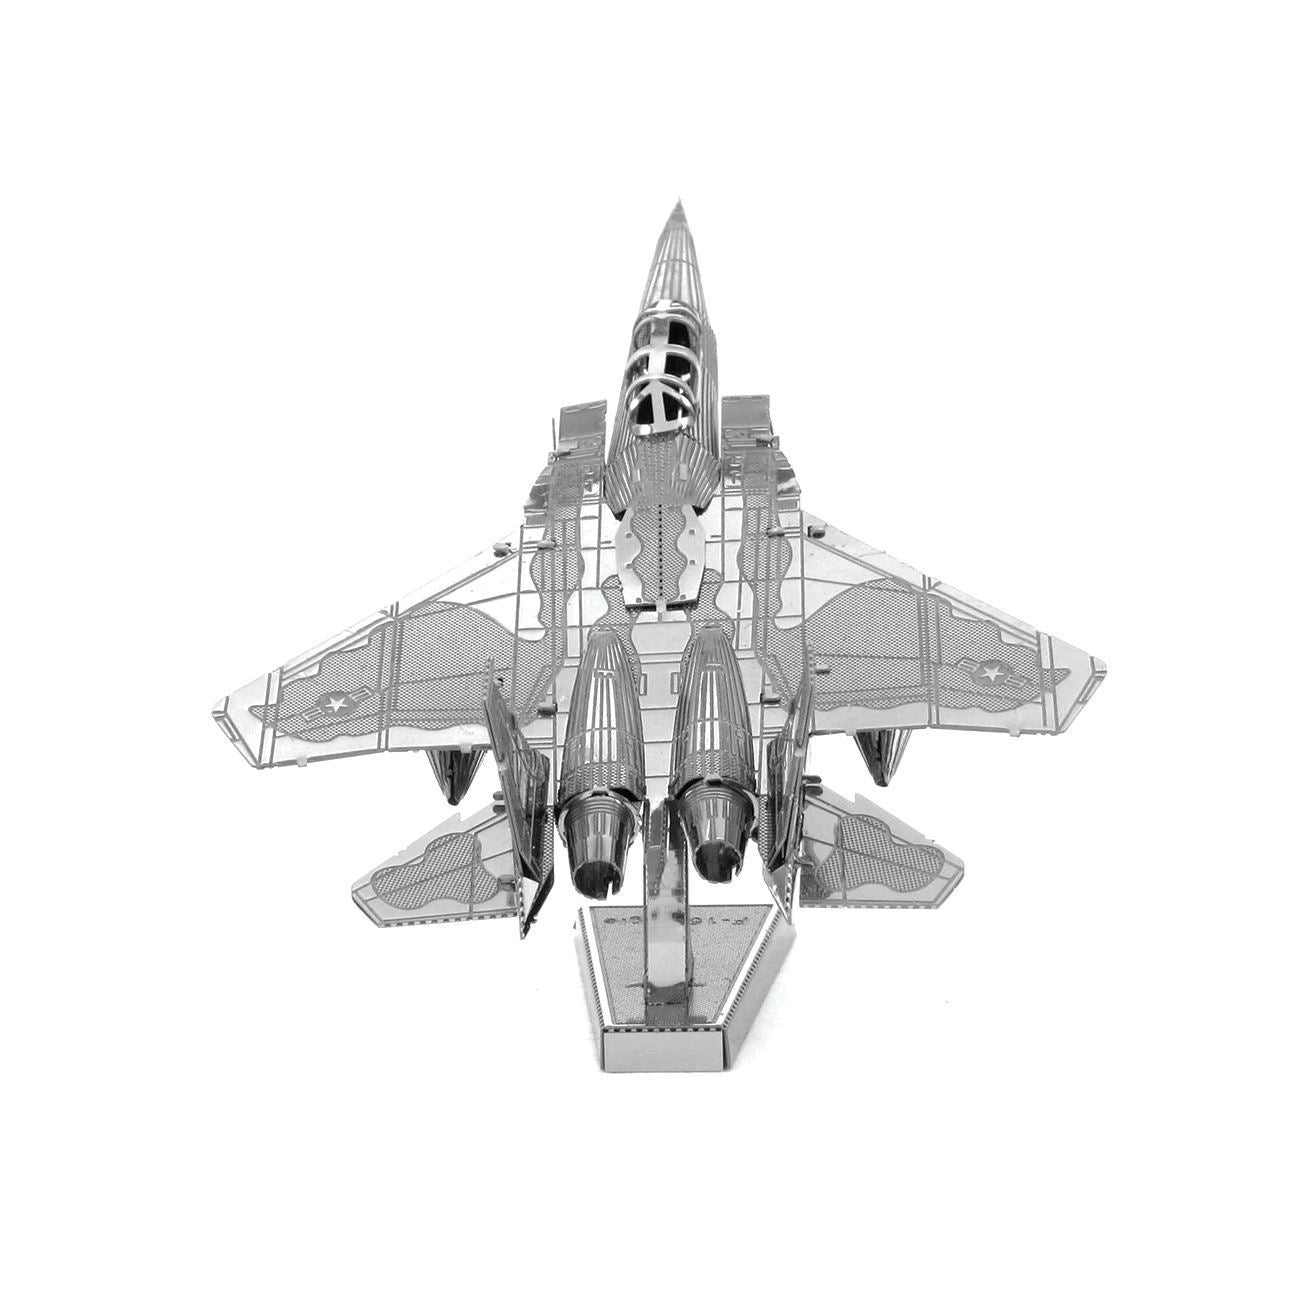 Fascinations Metal Earth Boeing F-15 Eagle 3D Laser Cut Aircraft Display Model